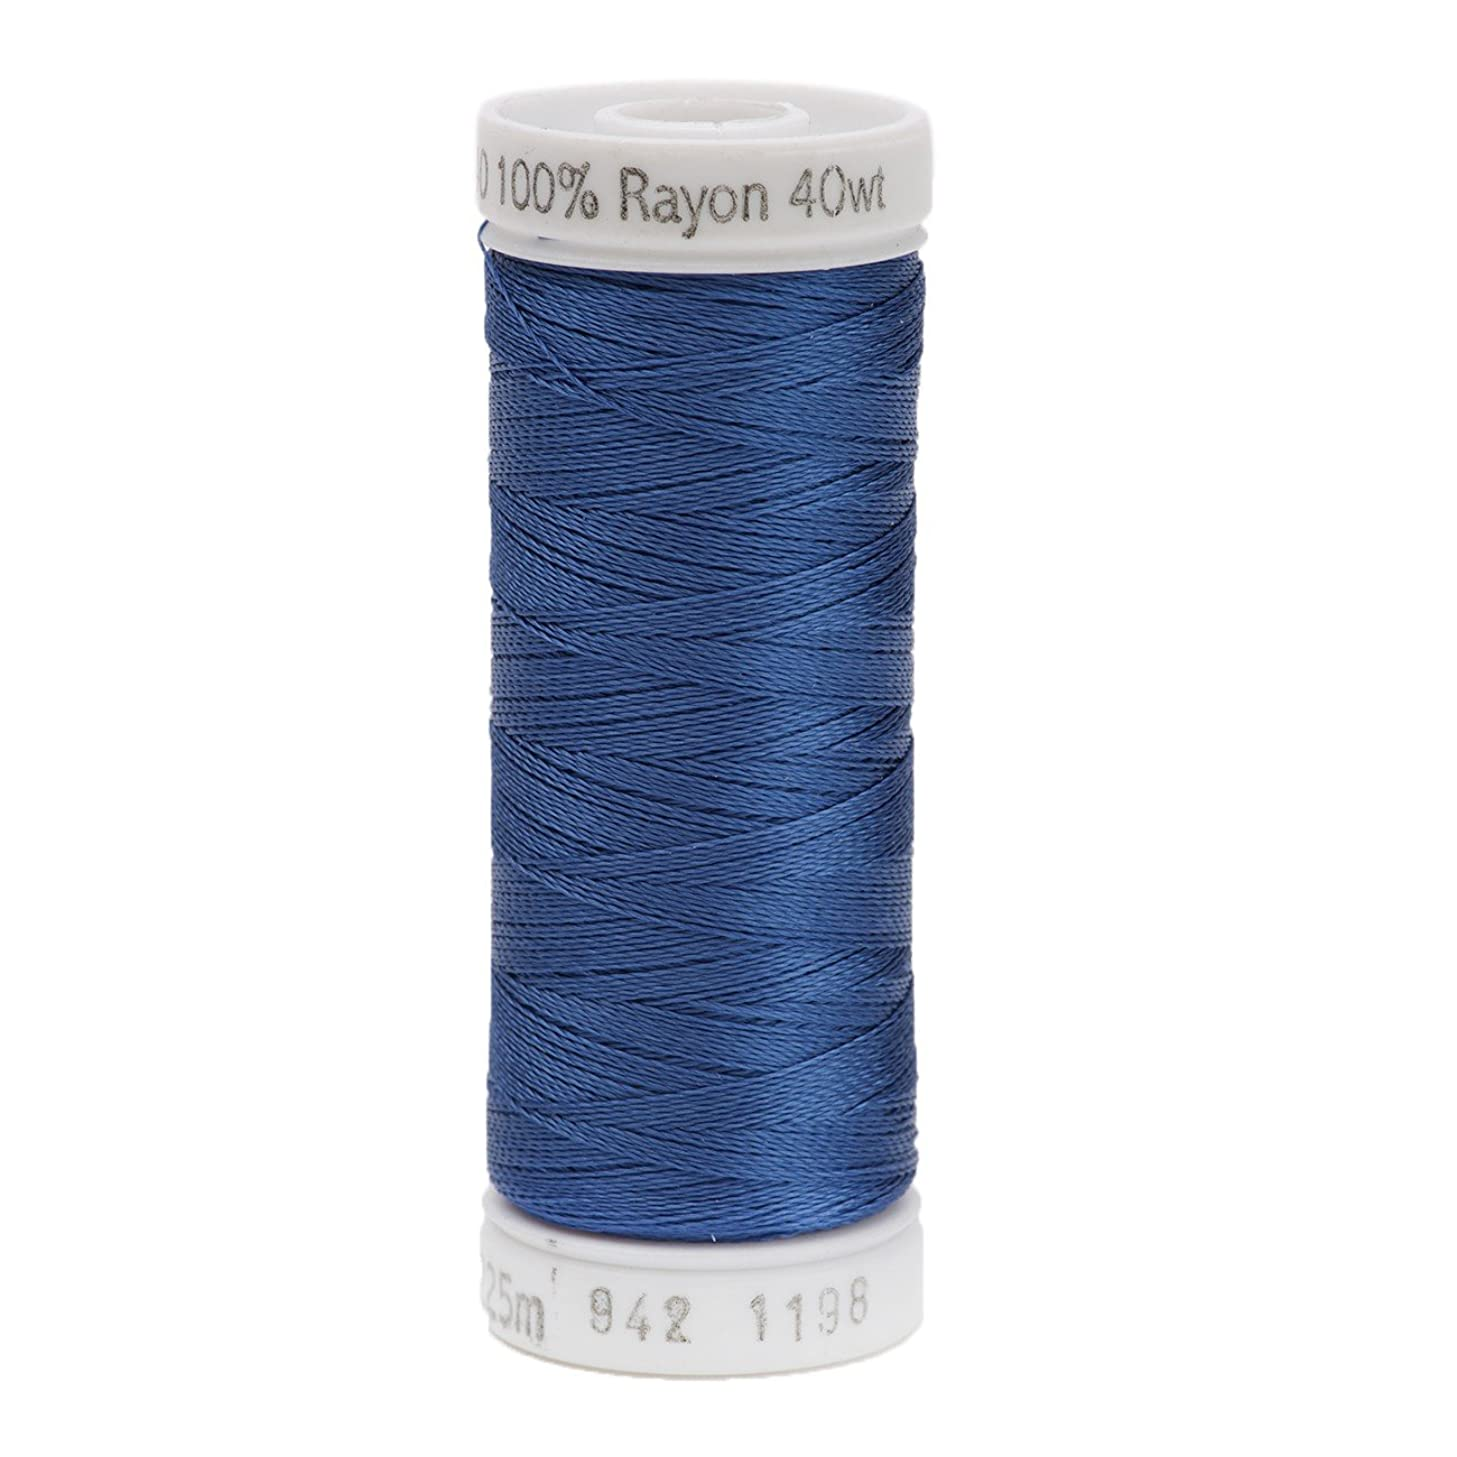 Sulky 942-1198 Rayon Thread for Sewing, 250-Yard, Dusty Navy